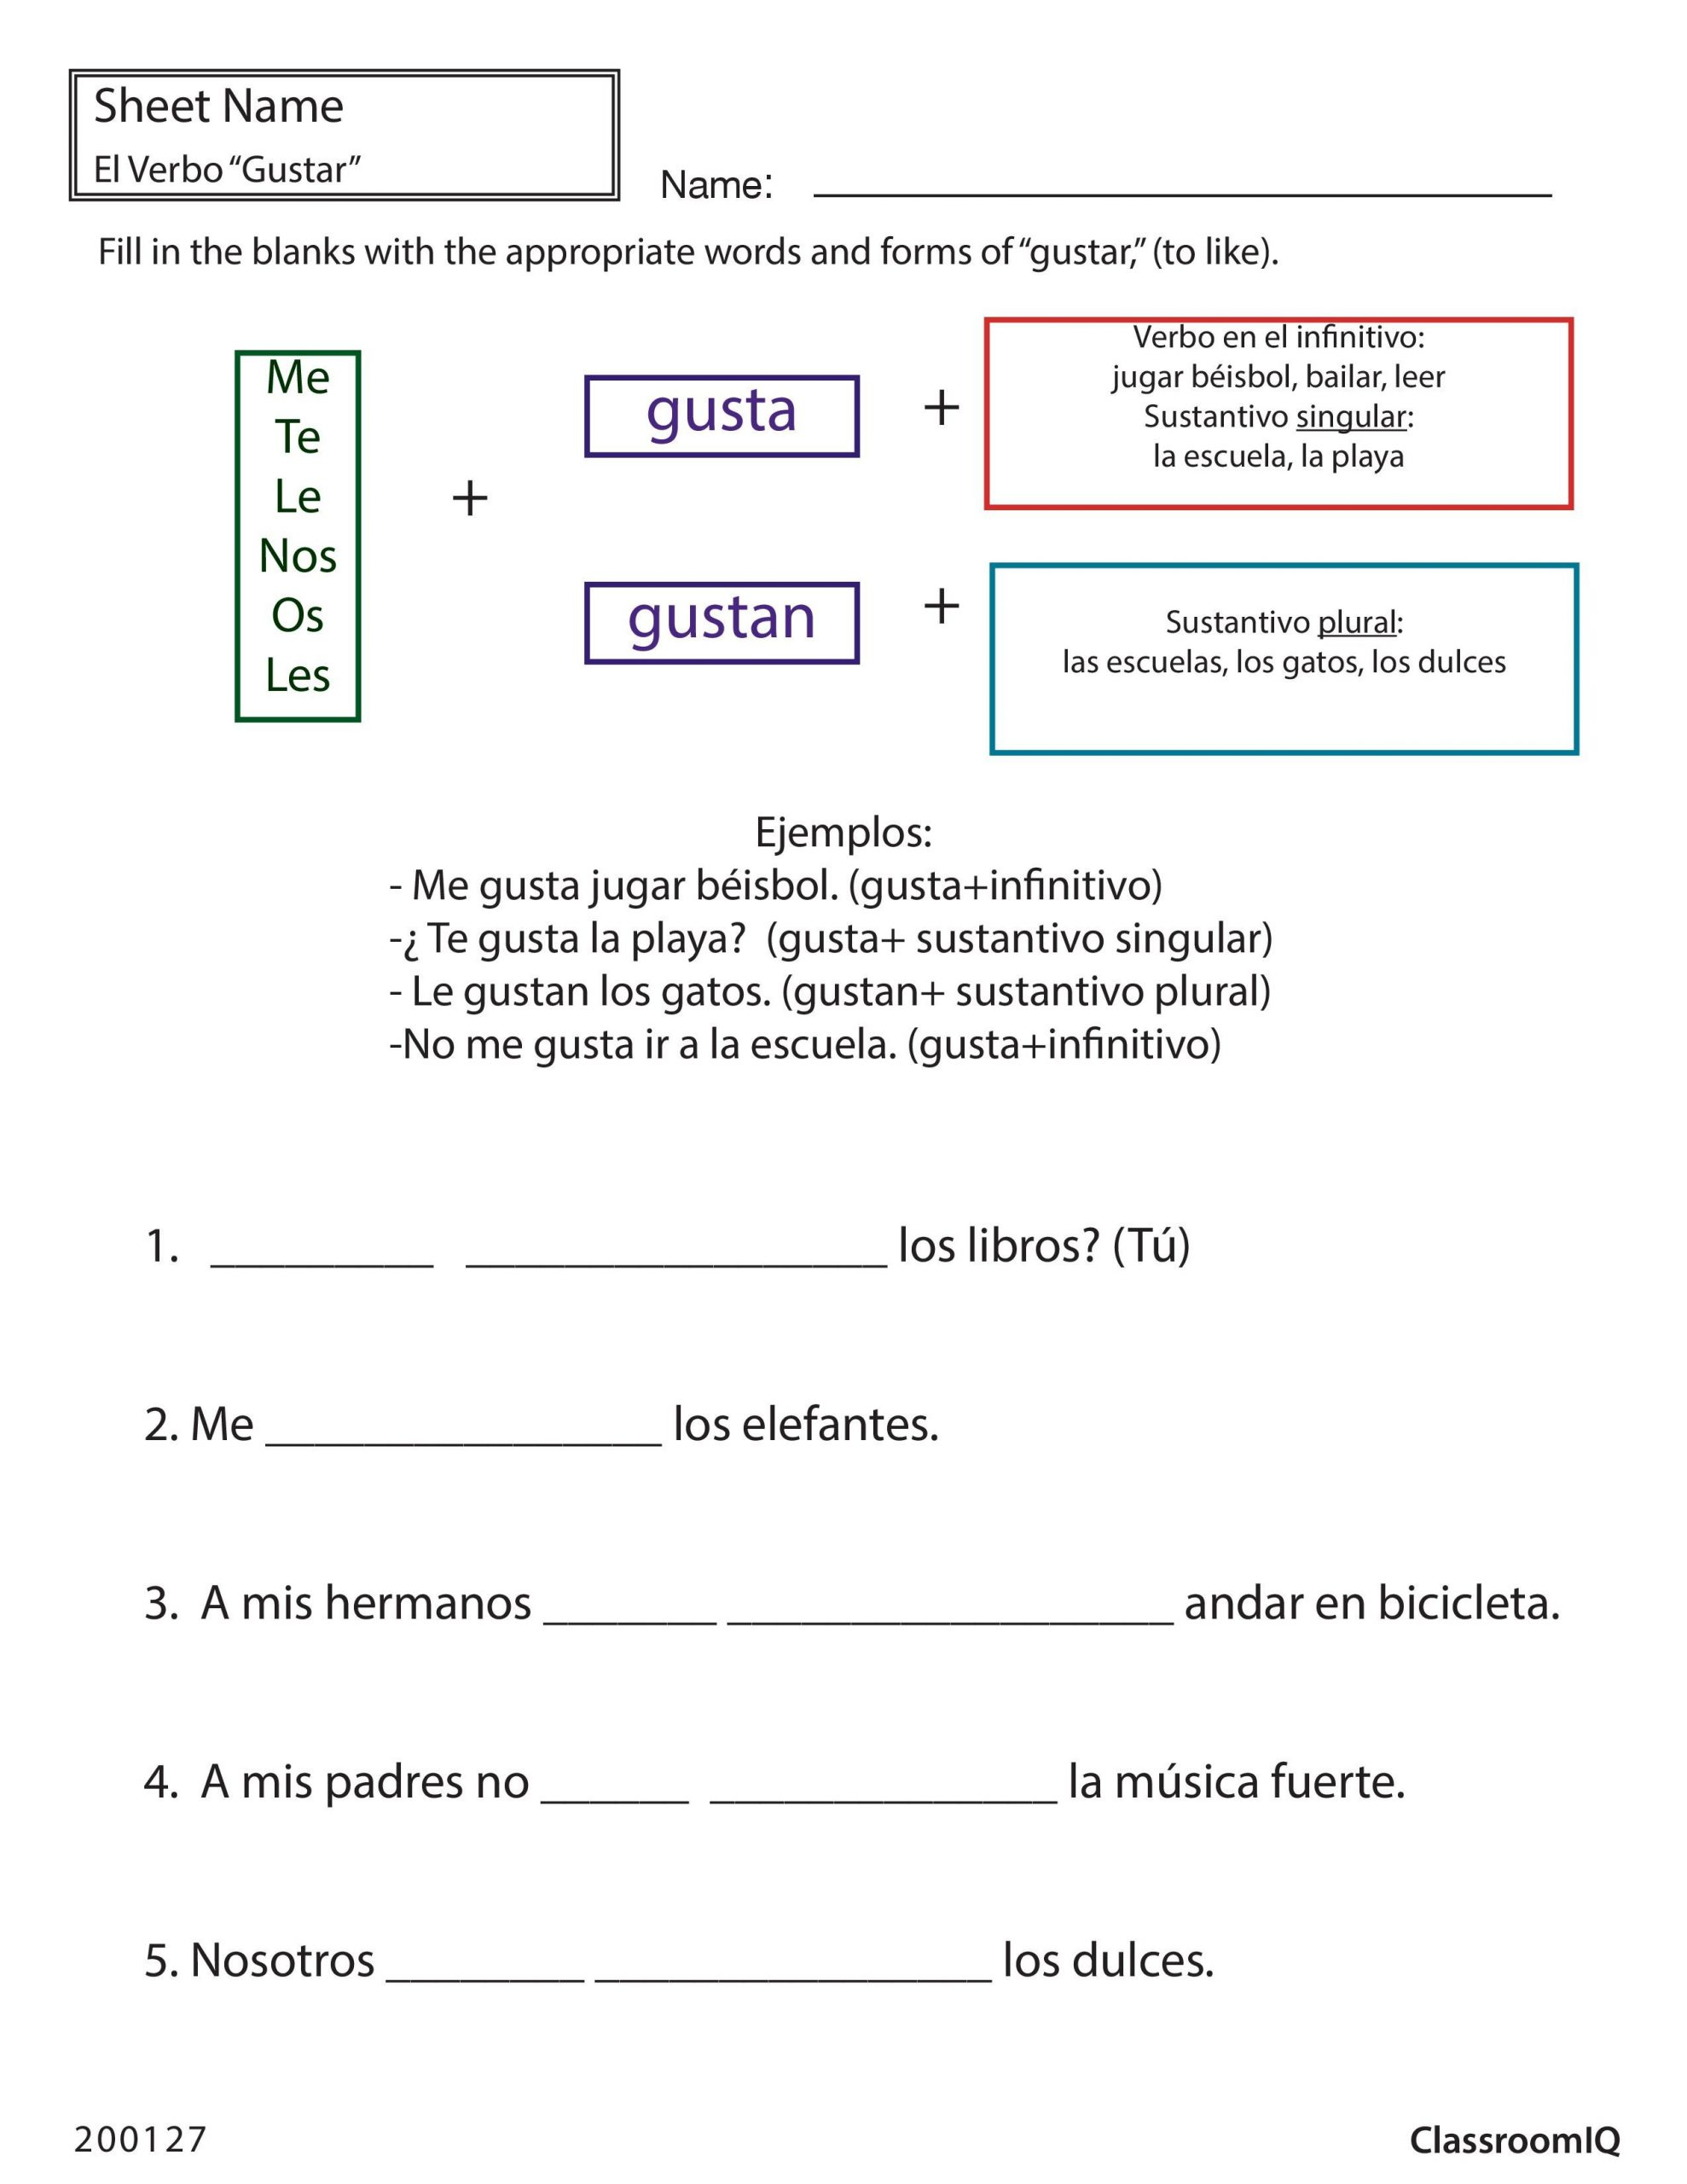 Spanish Reflexive Verbs Worksheet Printable Gustar to Like Spanishworksheet Newteachers Printable